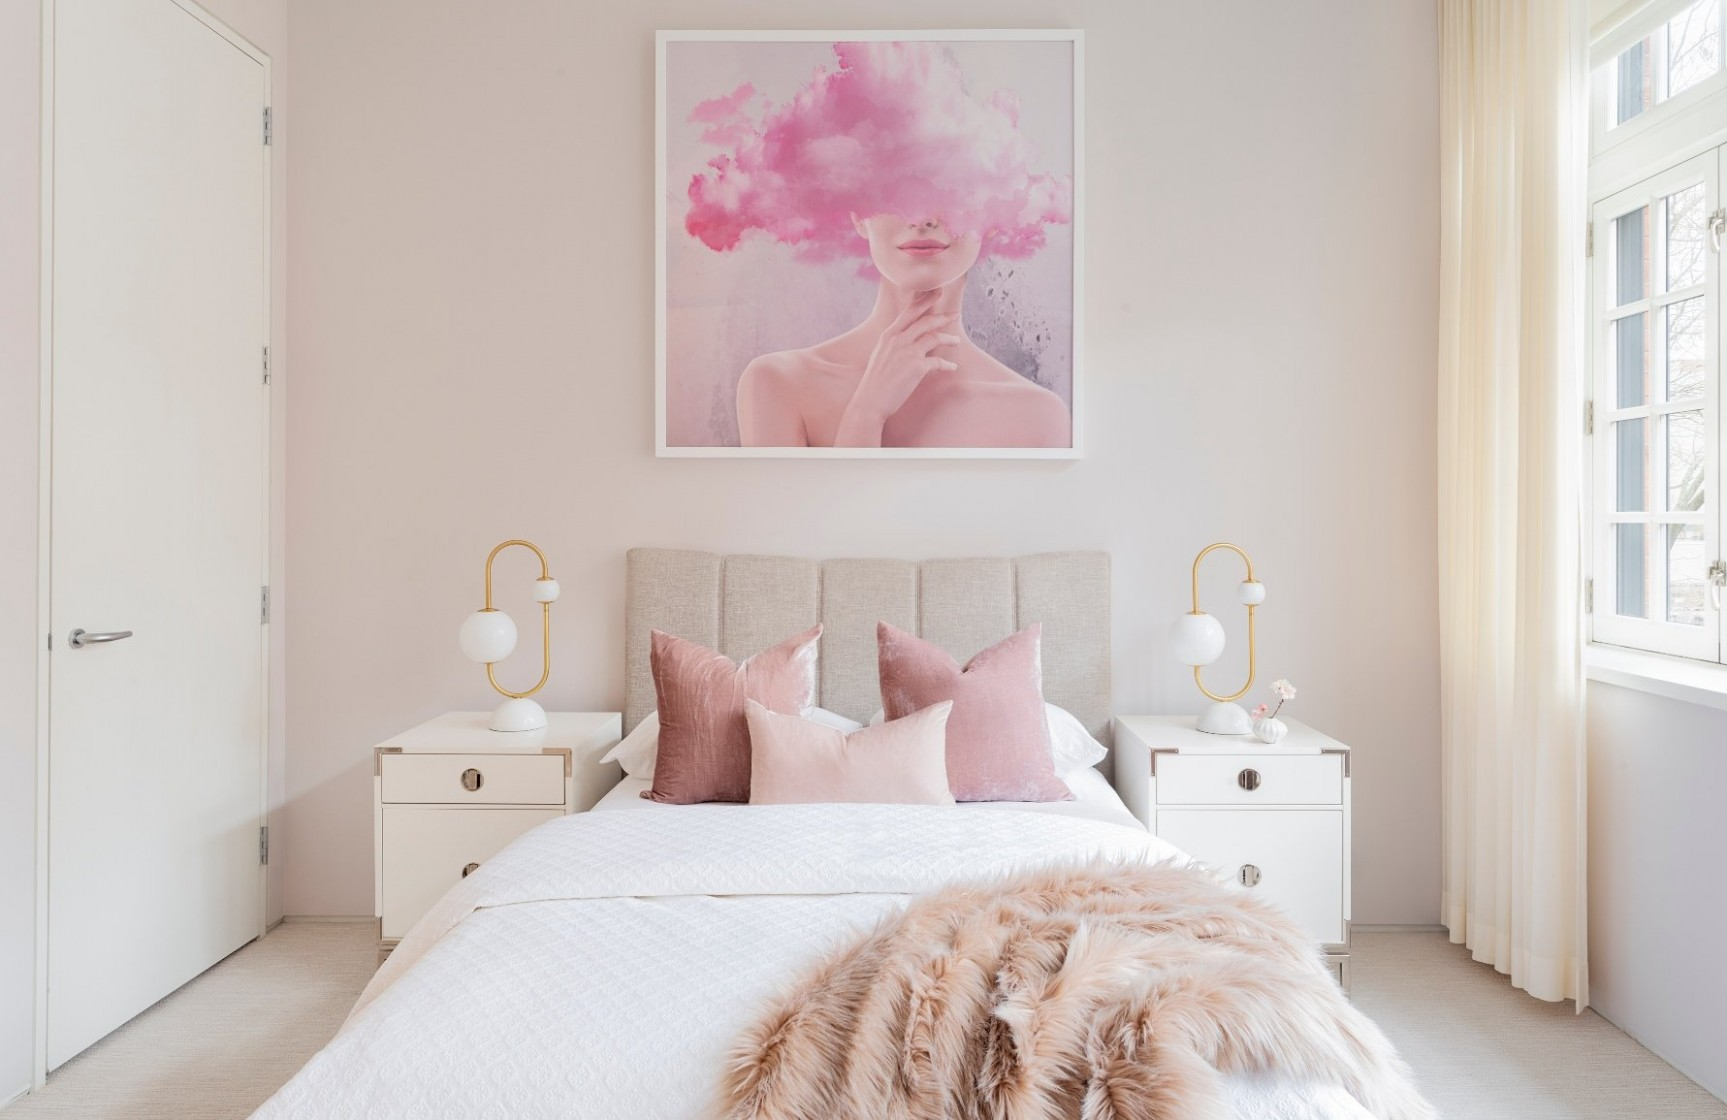 Pink Bedroom Ideas  How to Decorate a Room Pink  LuxDeco - Bedroom Ideas Pink